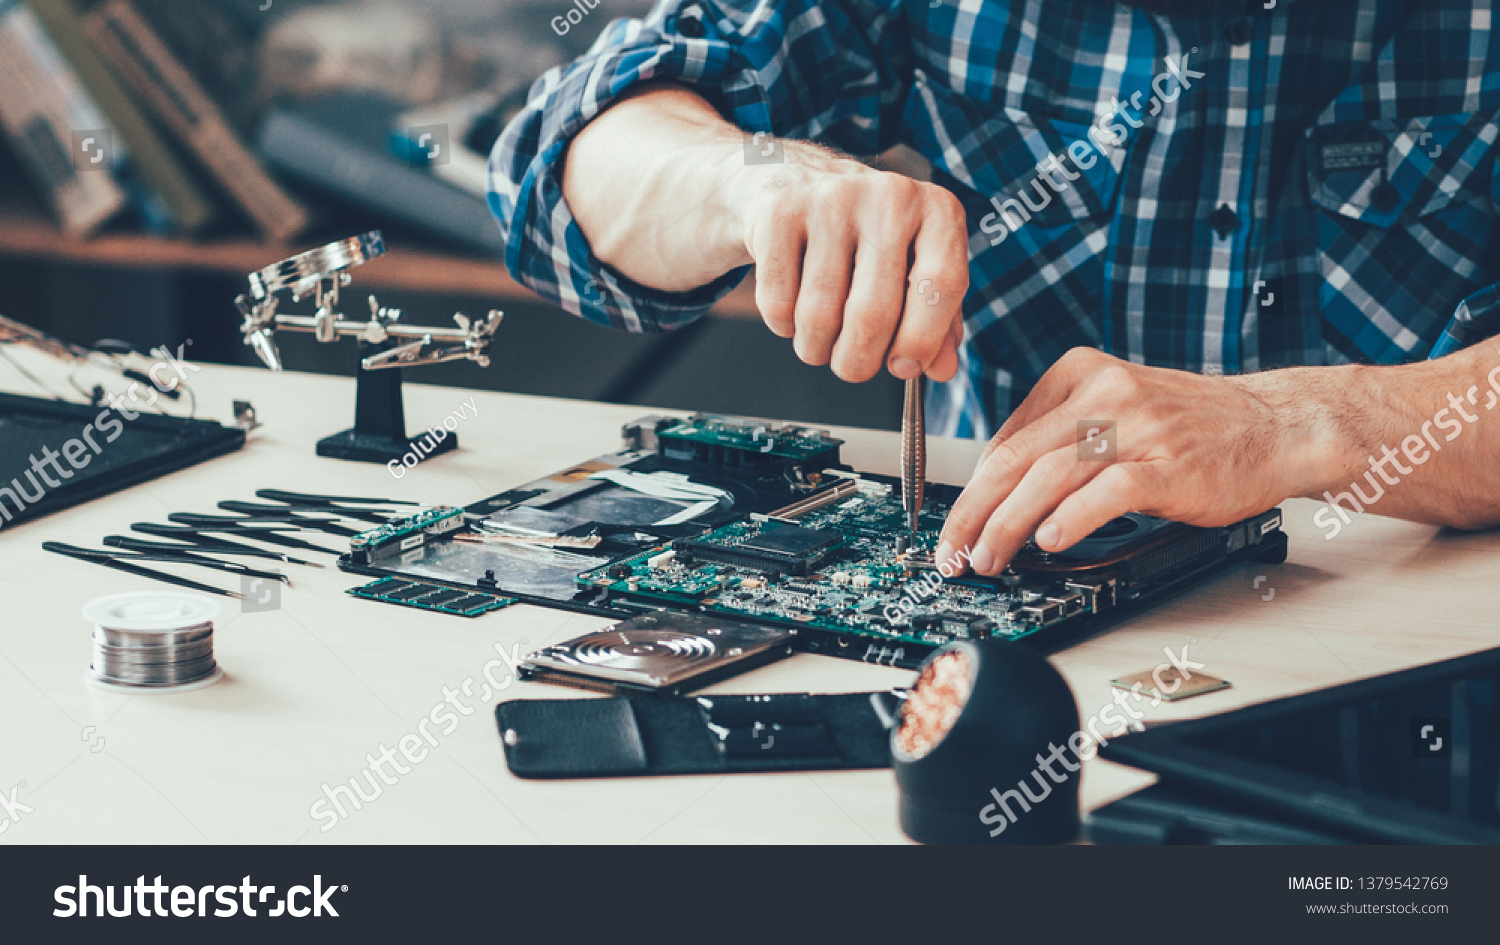 Computer repair shop. Engineer performing laptop maintenance. Hardware developer fixing electronic components. PC technology